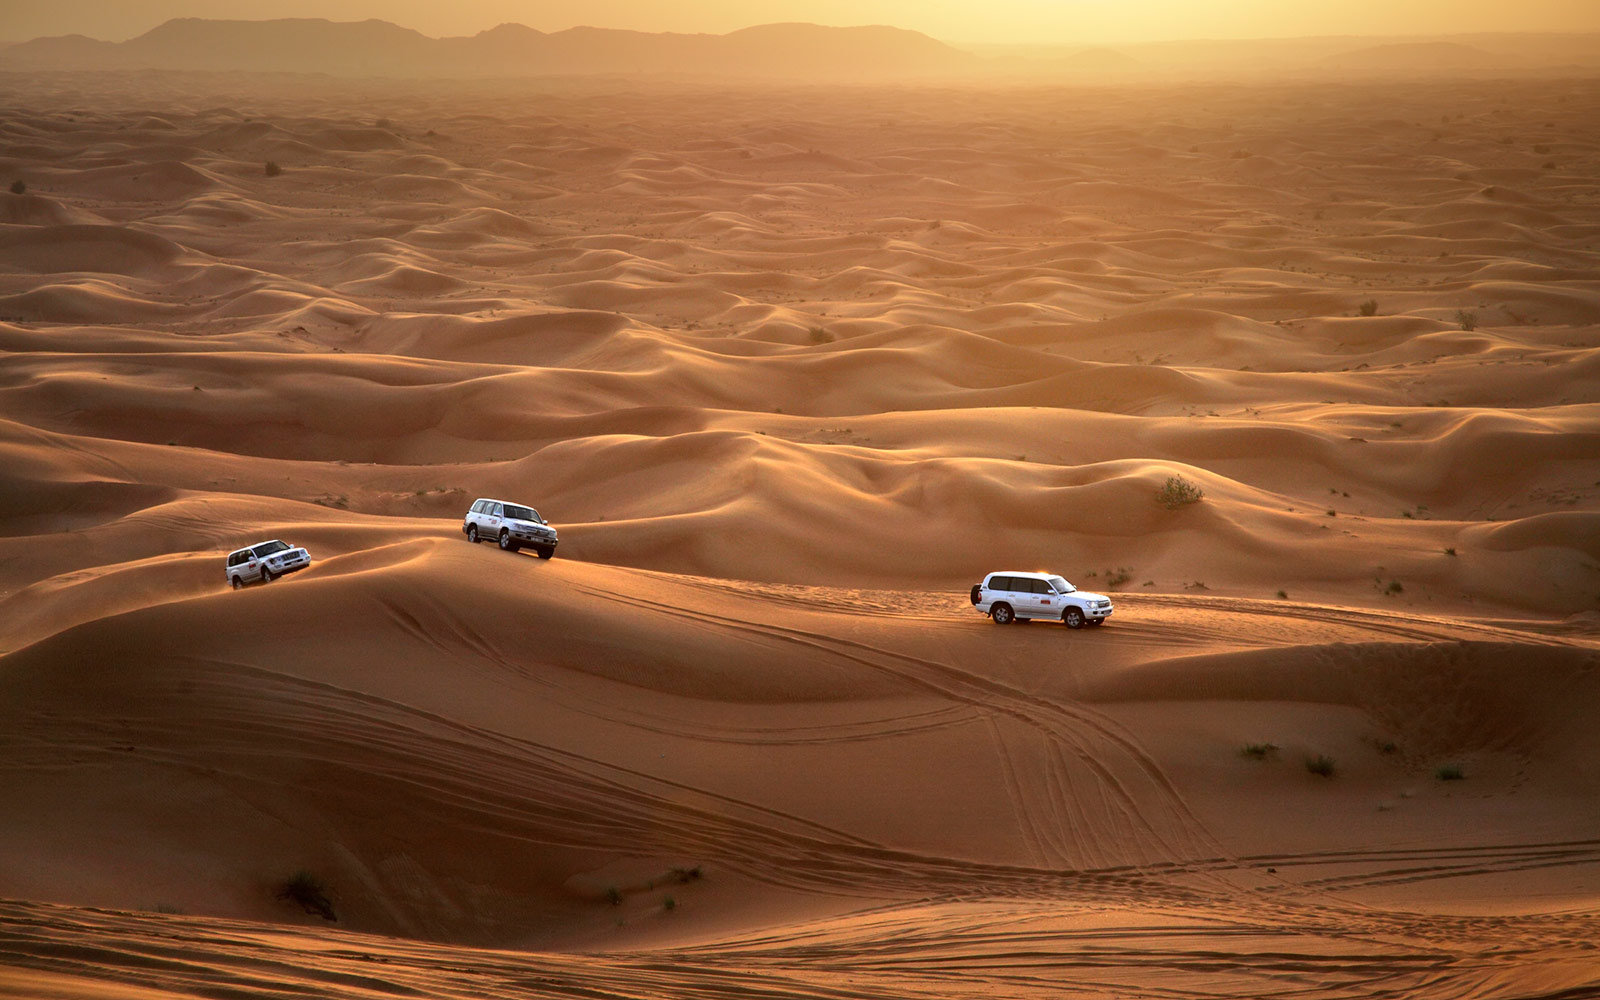 Jeeps, Dubai desert, United Arab Emirates